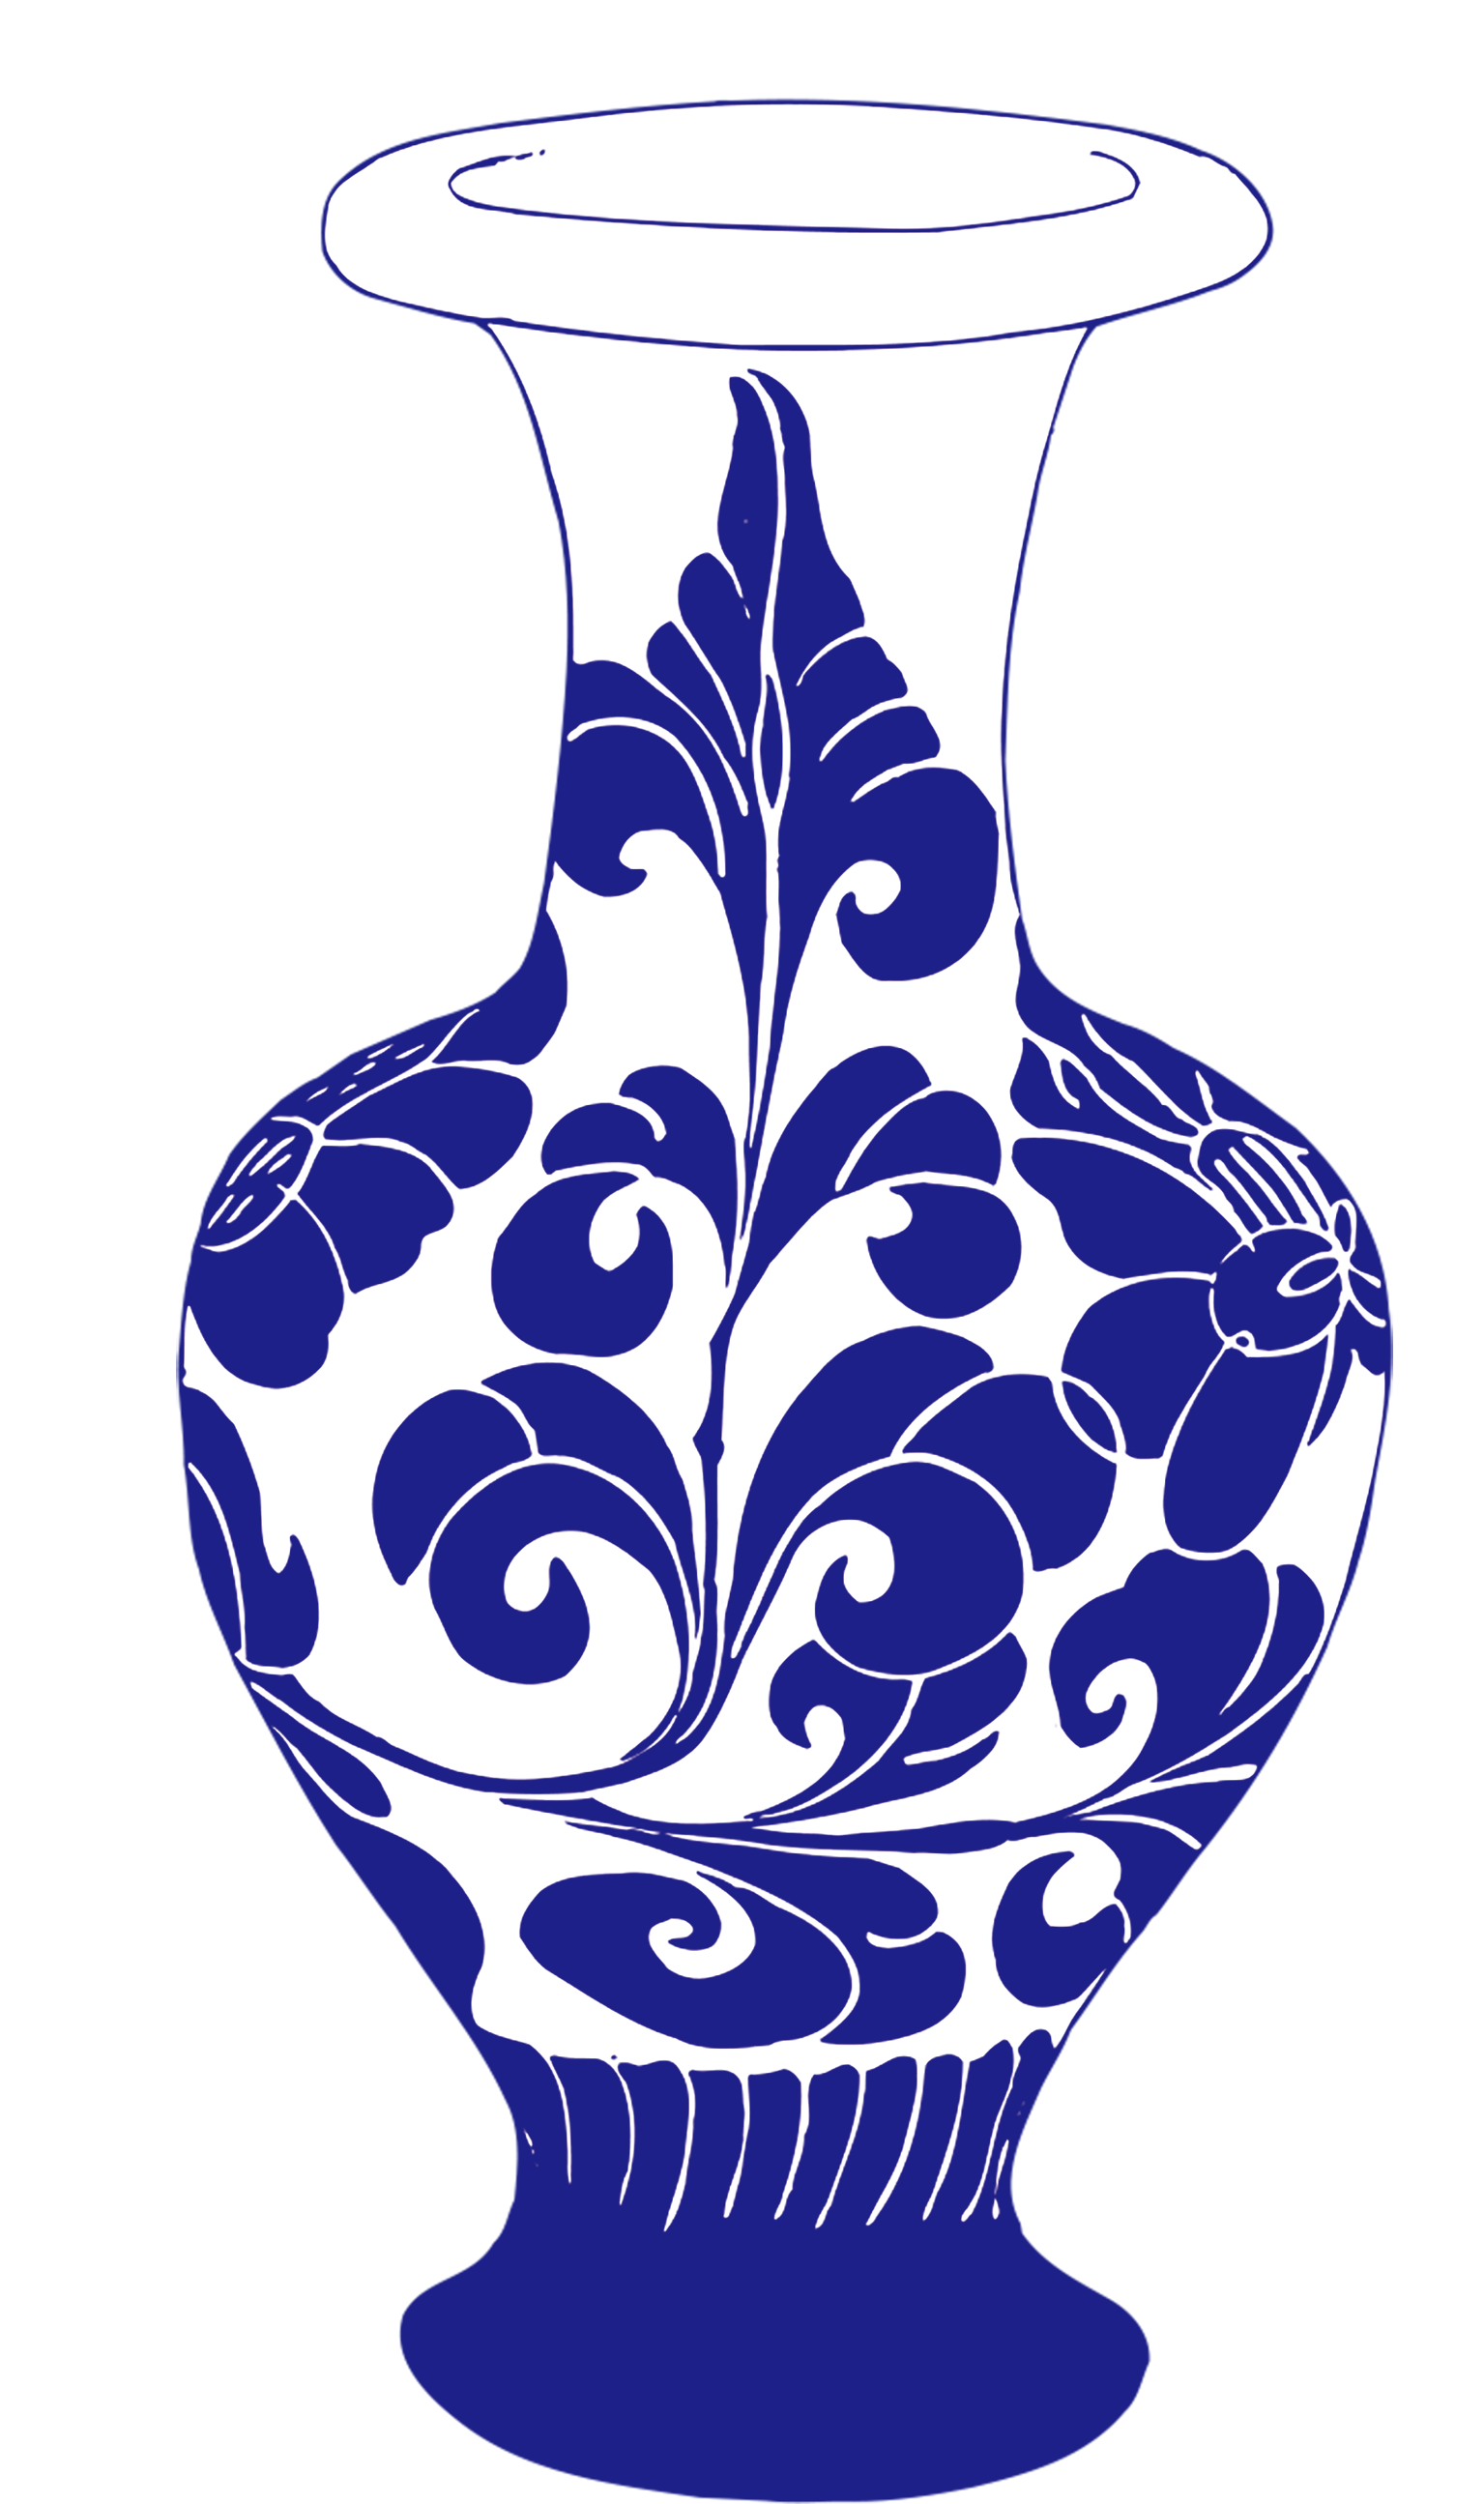 Egyptian clipart vase. Blue and white pottery